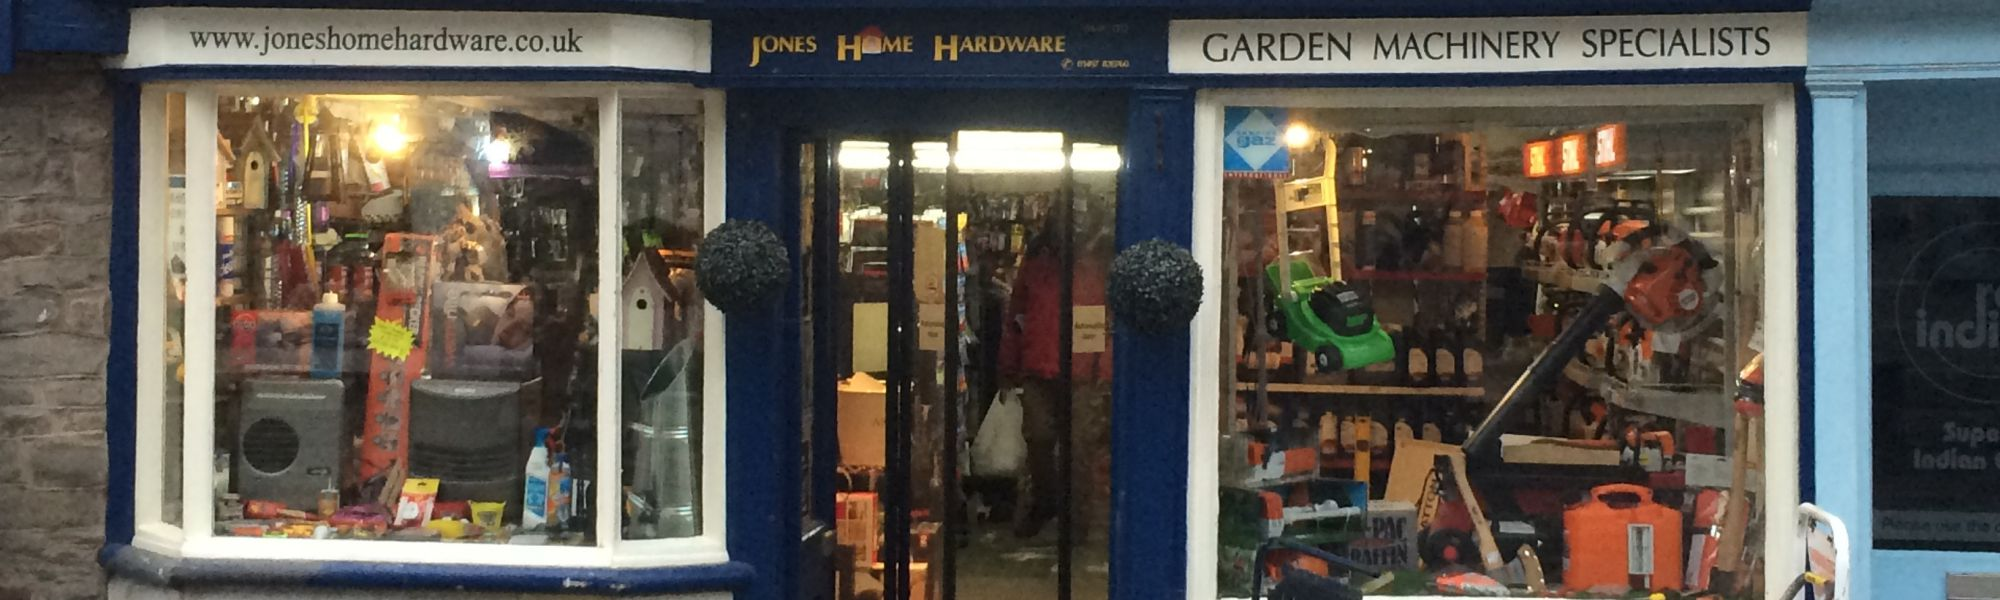 Jones Home Hardware, local hardware shop in Hay-on-Wye